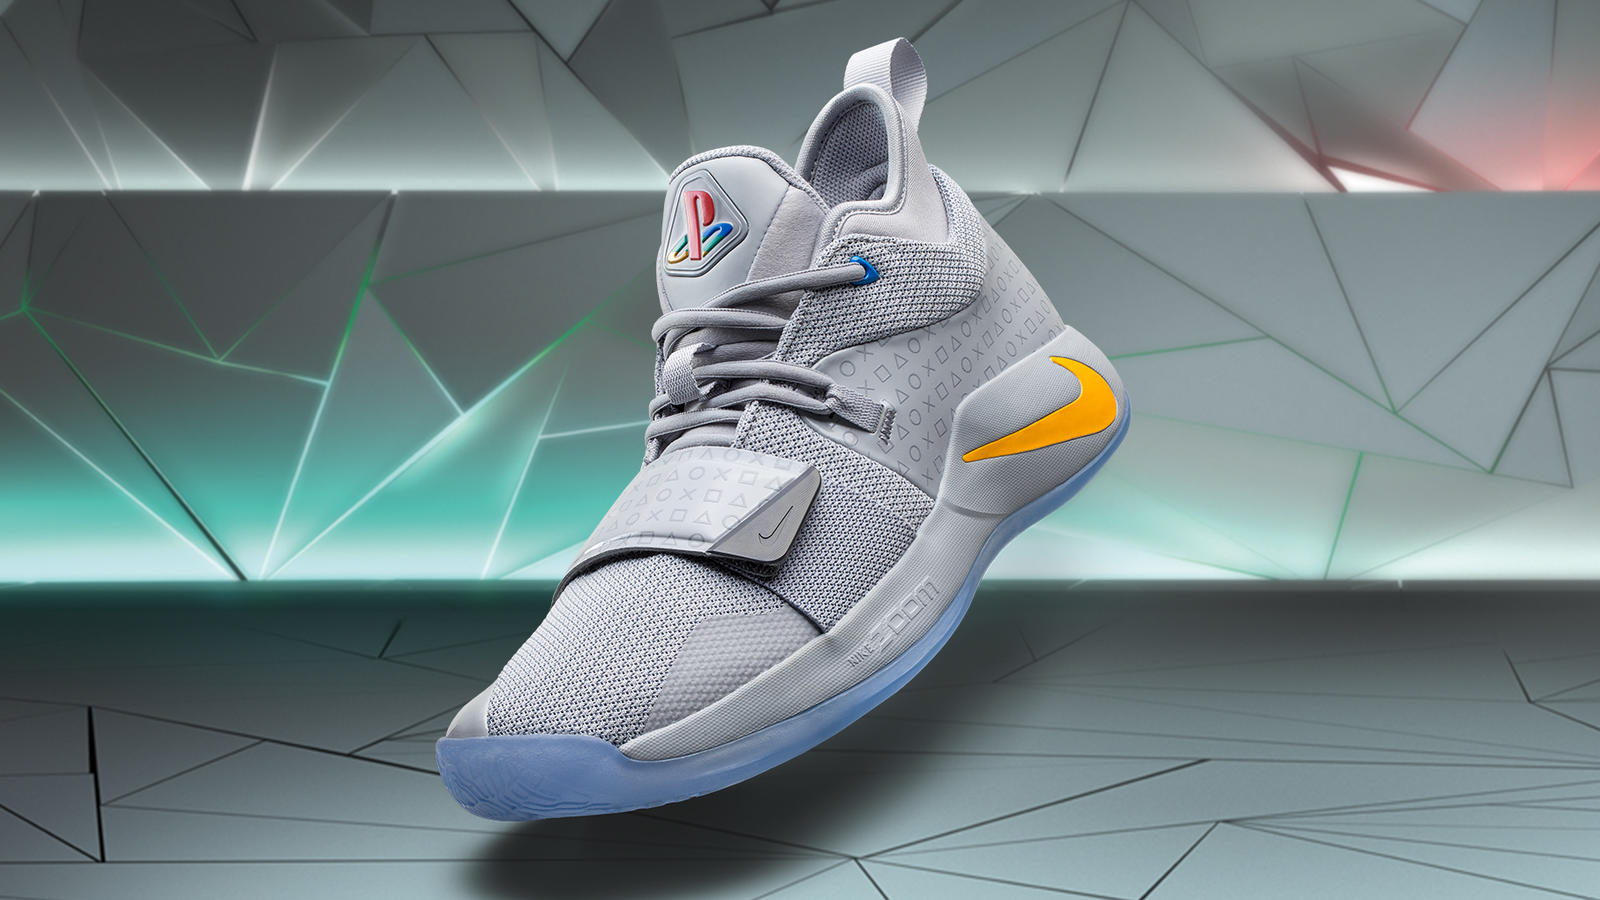 4dc0466261f Nike Announces PG 2.5 x PlayStation Shoes With Classic PS1 Look